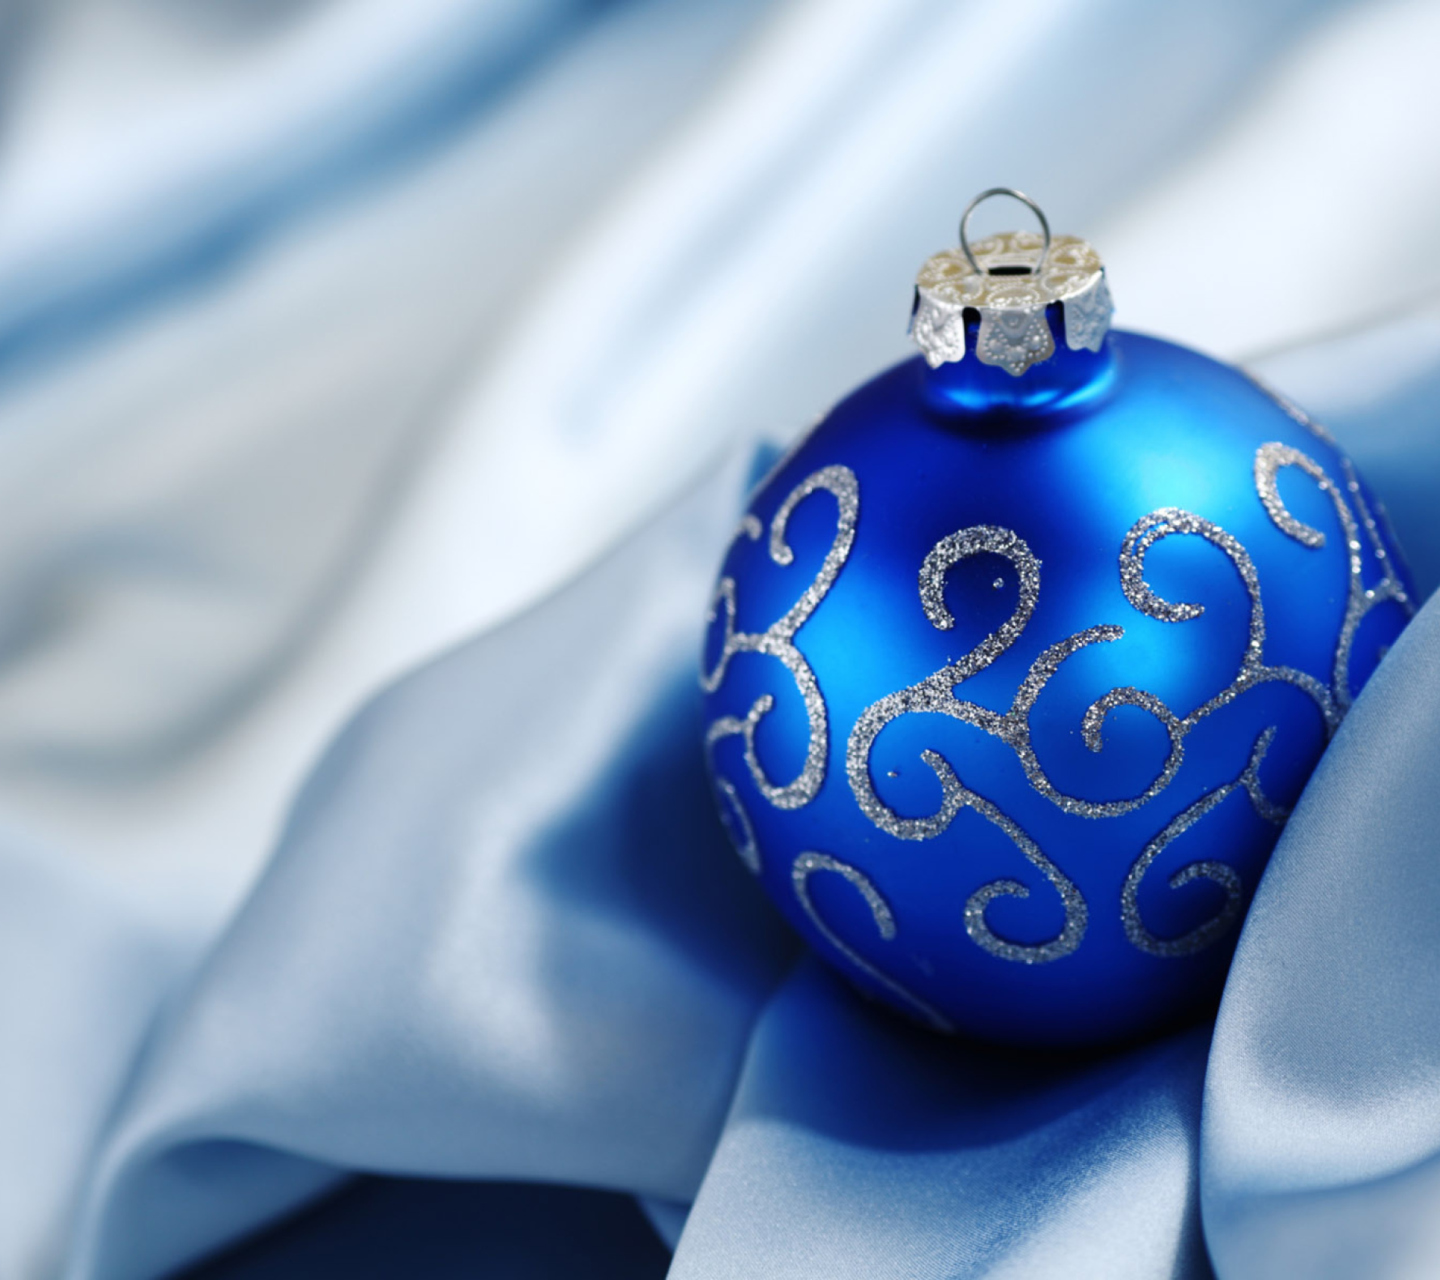 Christmas Decorations wallpaper 1440x1280